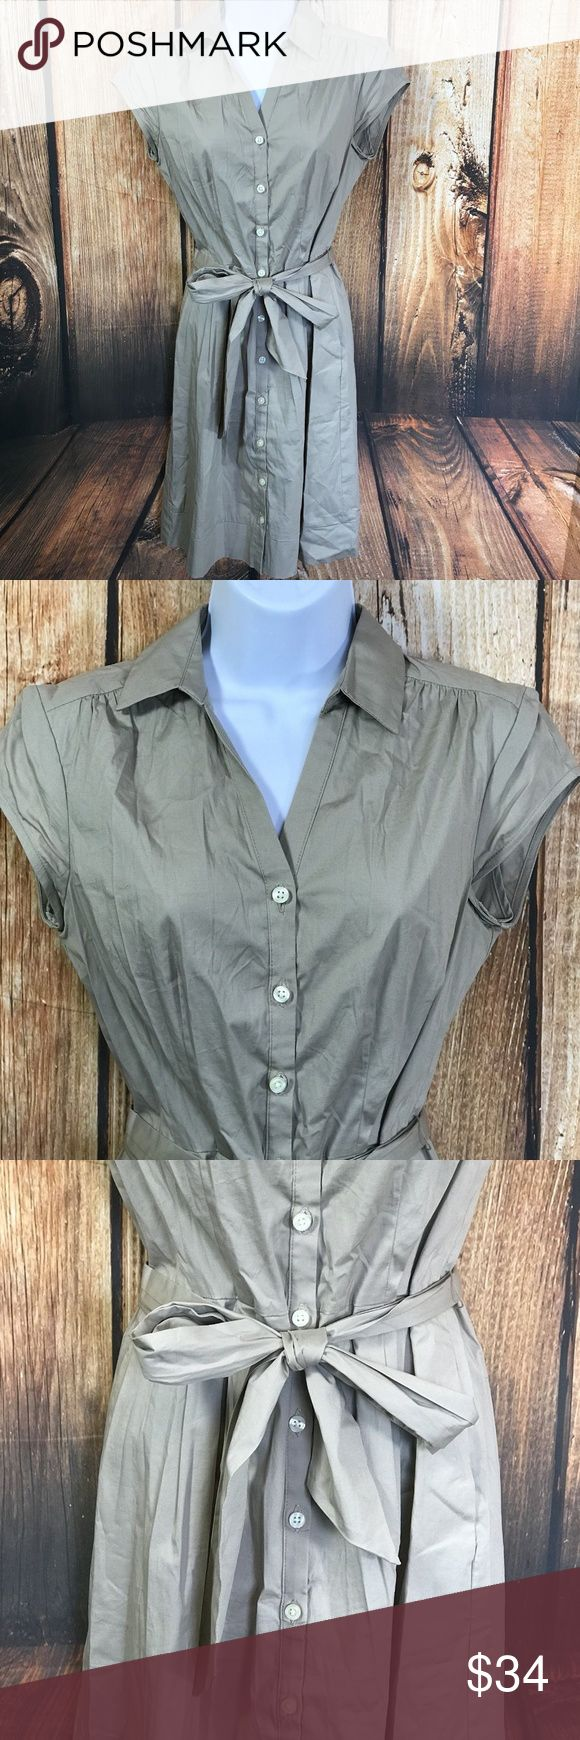 """Banana Republic Safari Stretch Petite Shirt Dress Banana Republic Safari Stretch Petite Button Front Shirt Dress Size 4P  Size 4 Petite  Measures about 16 """" across bust  Measures about 36"""" long from center back  Genty worn, one belt loop is unstitched at one side, otherwise good condition Banana Republic Dresses Midi"""